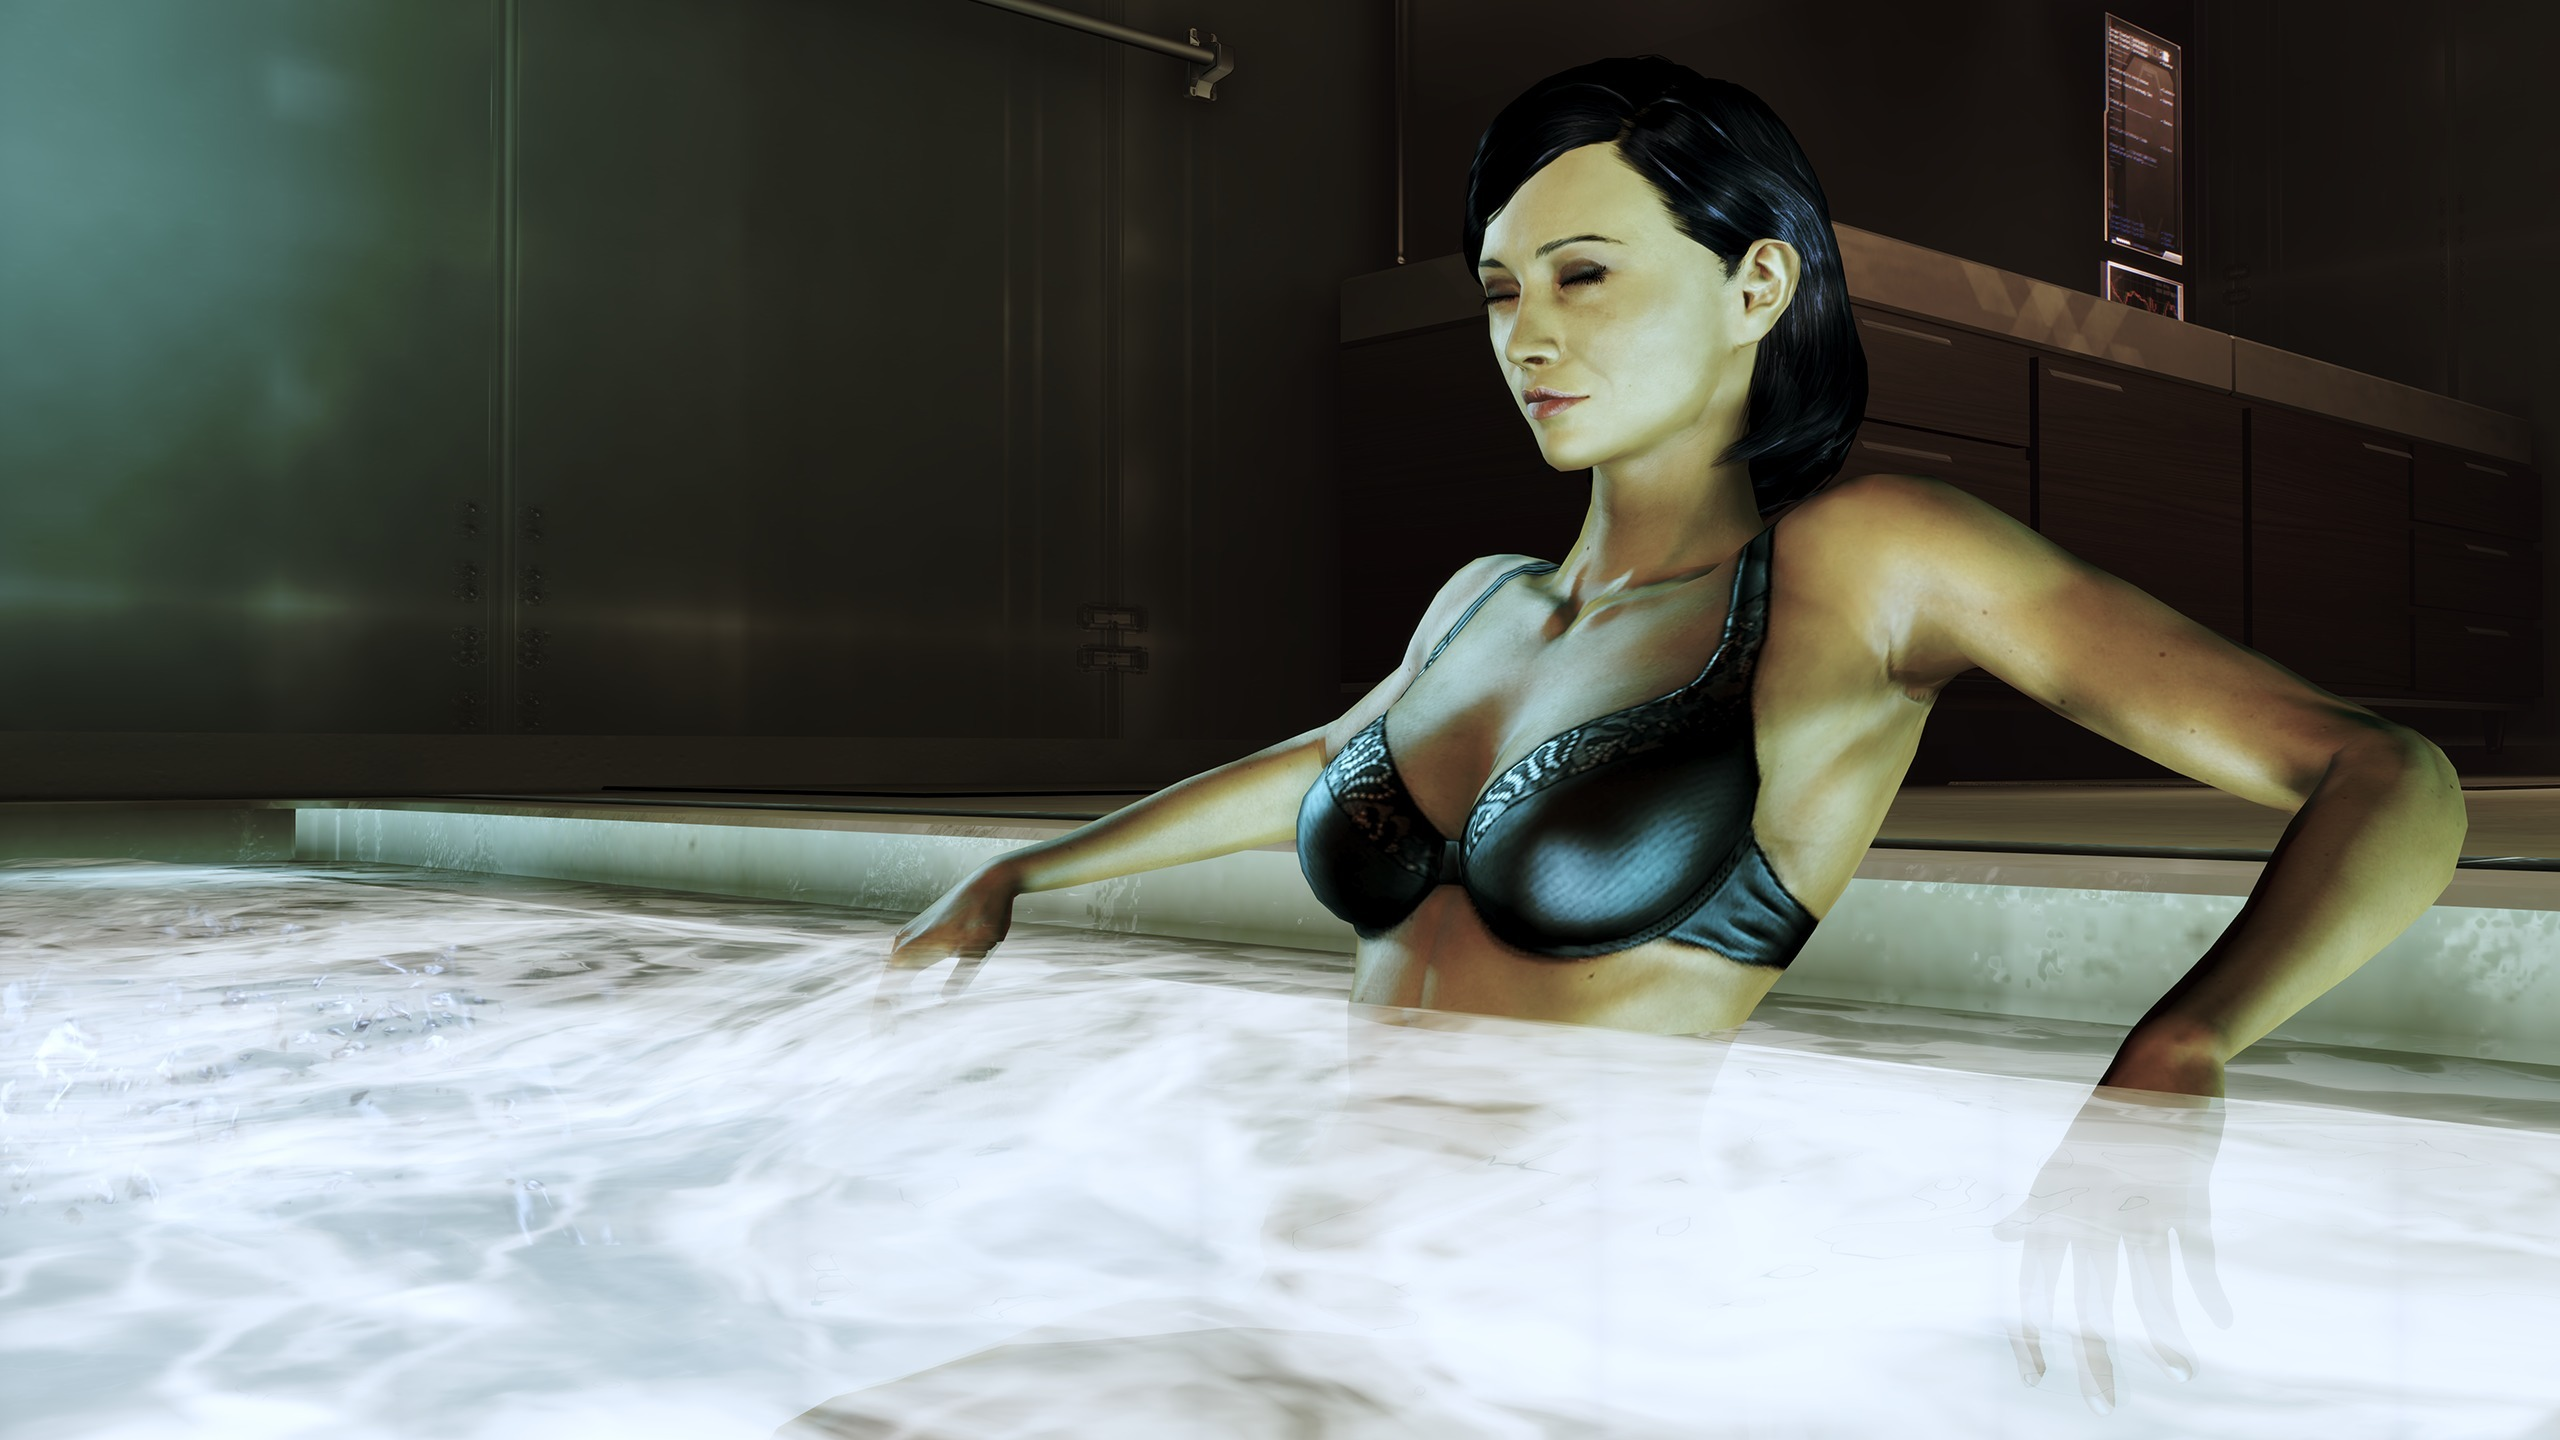 All the girls in masseffect 3d pics hentai videos